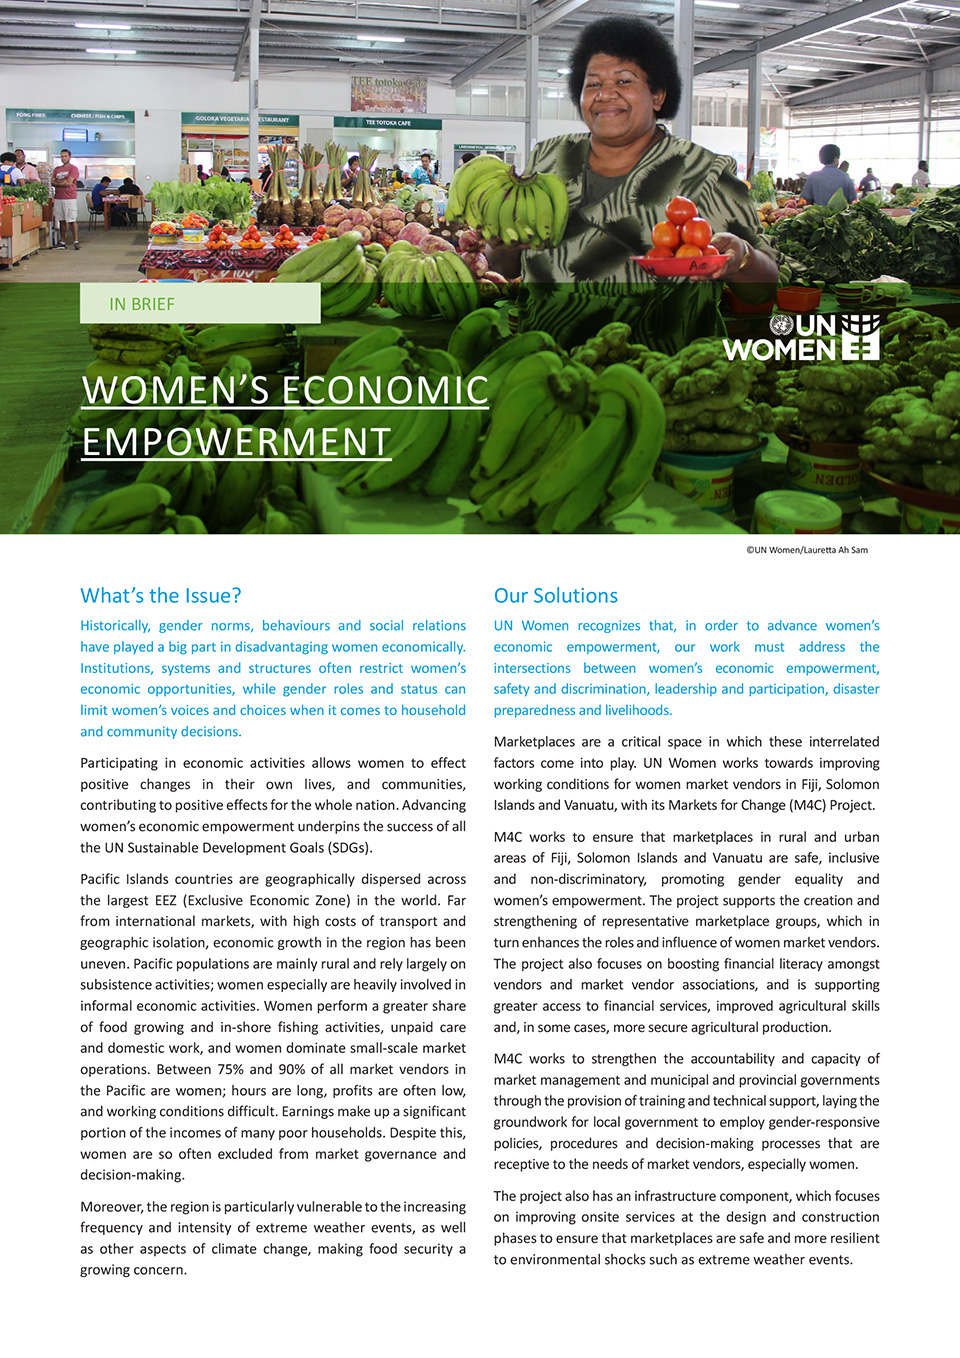 Women's Economic Empowerment